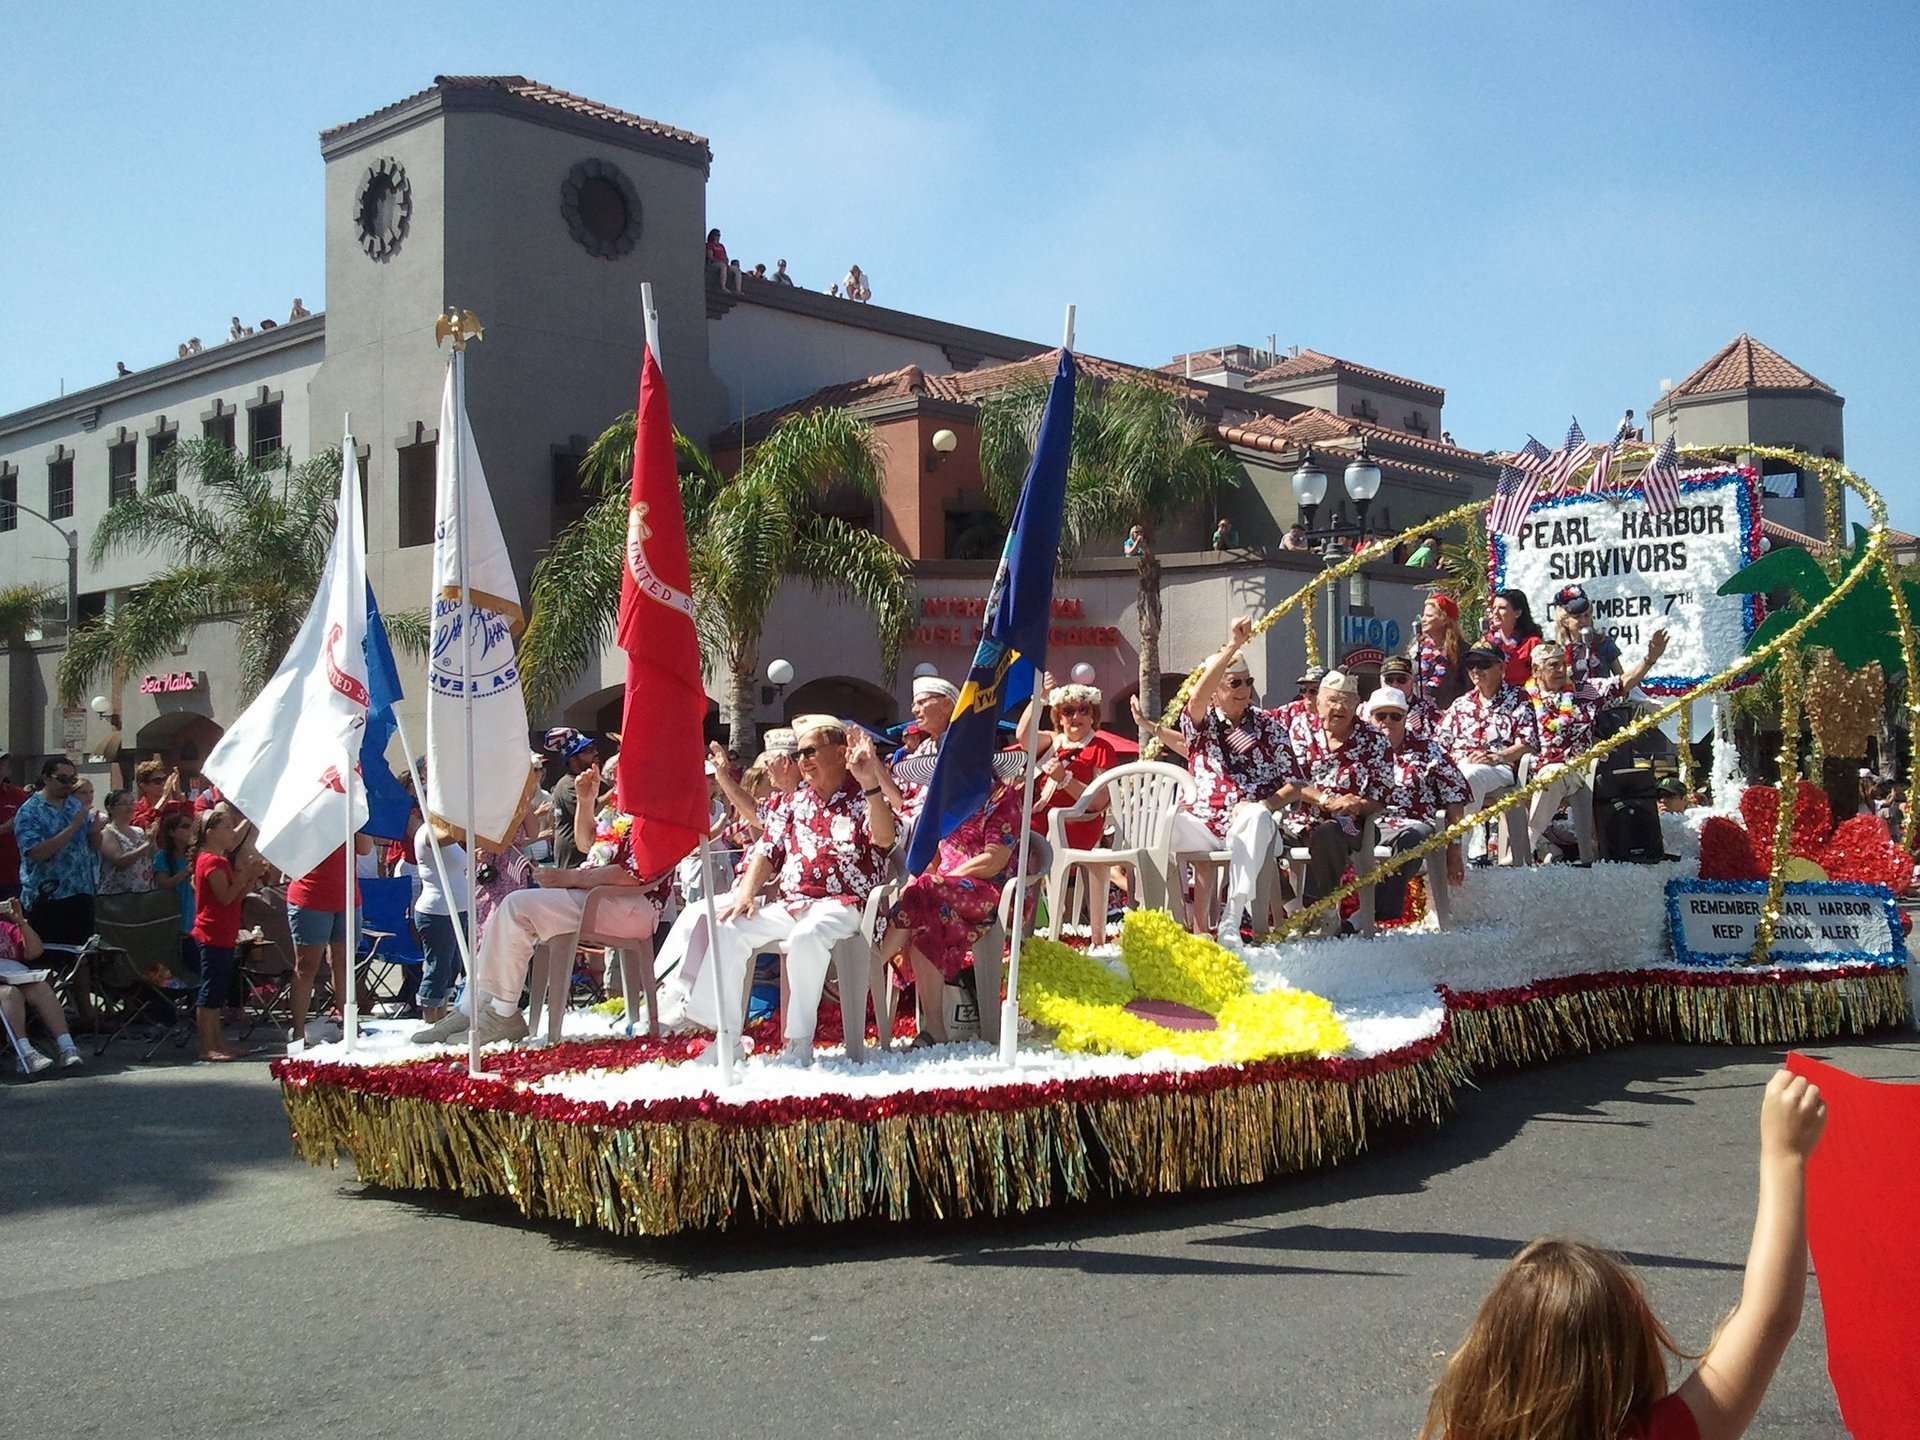 Best time for Huntington Beach 4th of July Parade and Fireworks in Huntington Beach, CA 2020